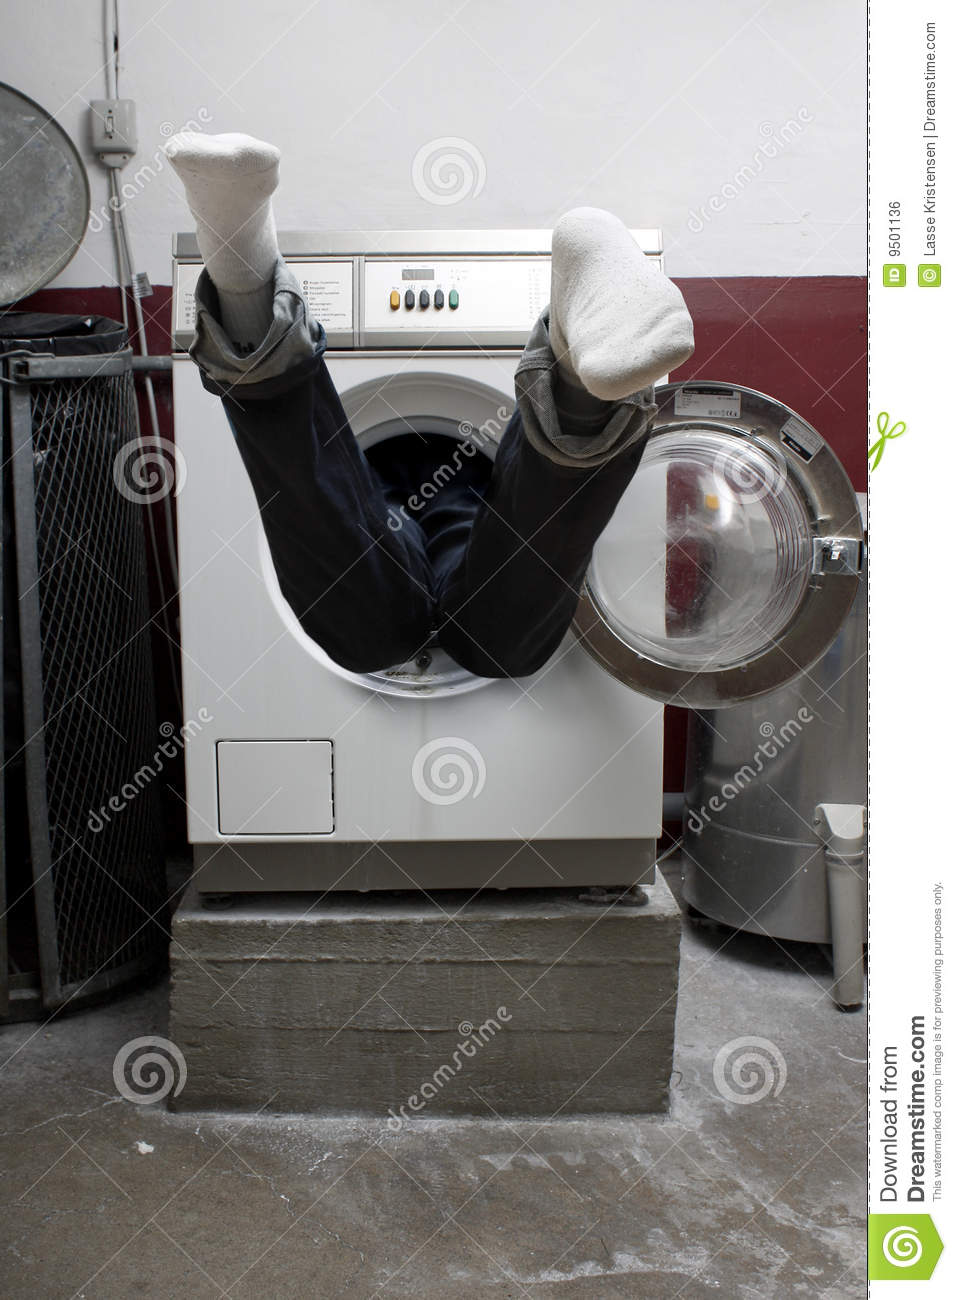 Person In Washing Machine Stock Photo Image Of Feet